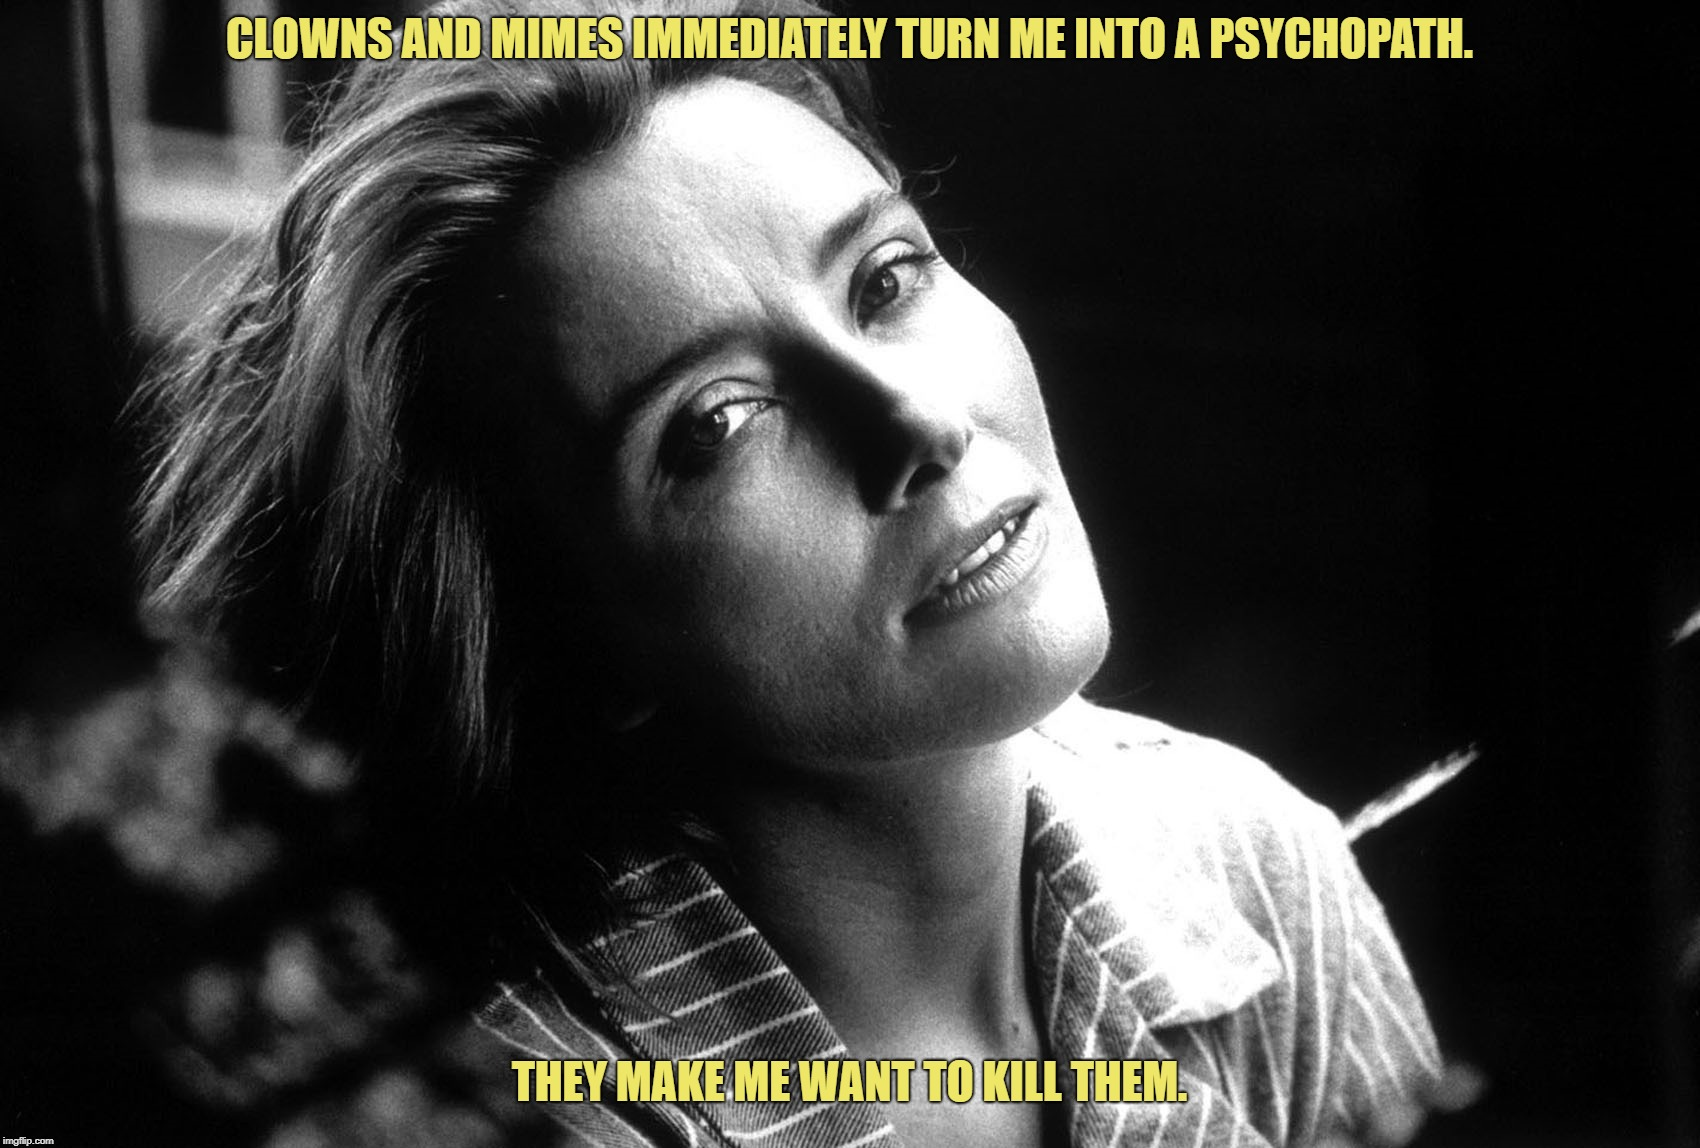 Clowns and Mimes... |  CLOWNS AND MIMES IMMEDIATELY TURN ME INTO A PSYCHOPATH. THEY MAKE ME WANT TO KILL THEM. | image tagged in kill them,clowns,mimes,emma thompson | made w/ Imgflip meme maker